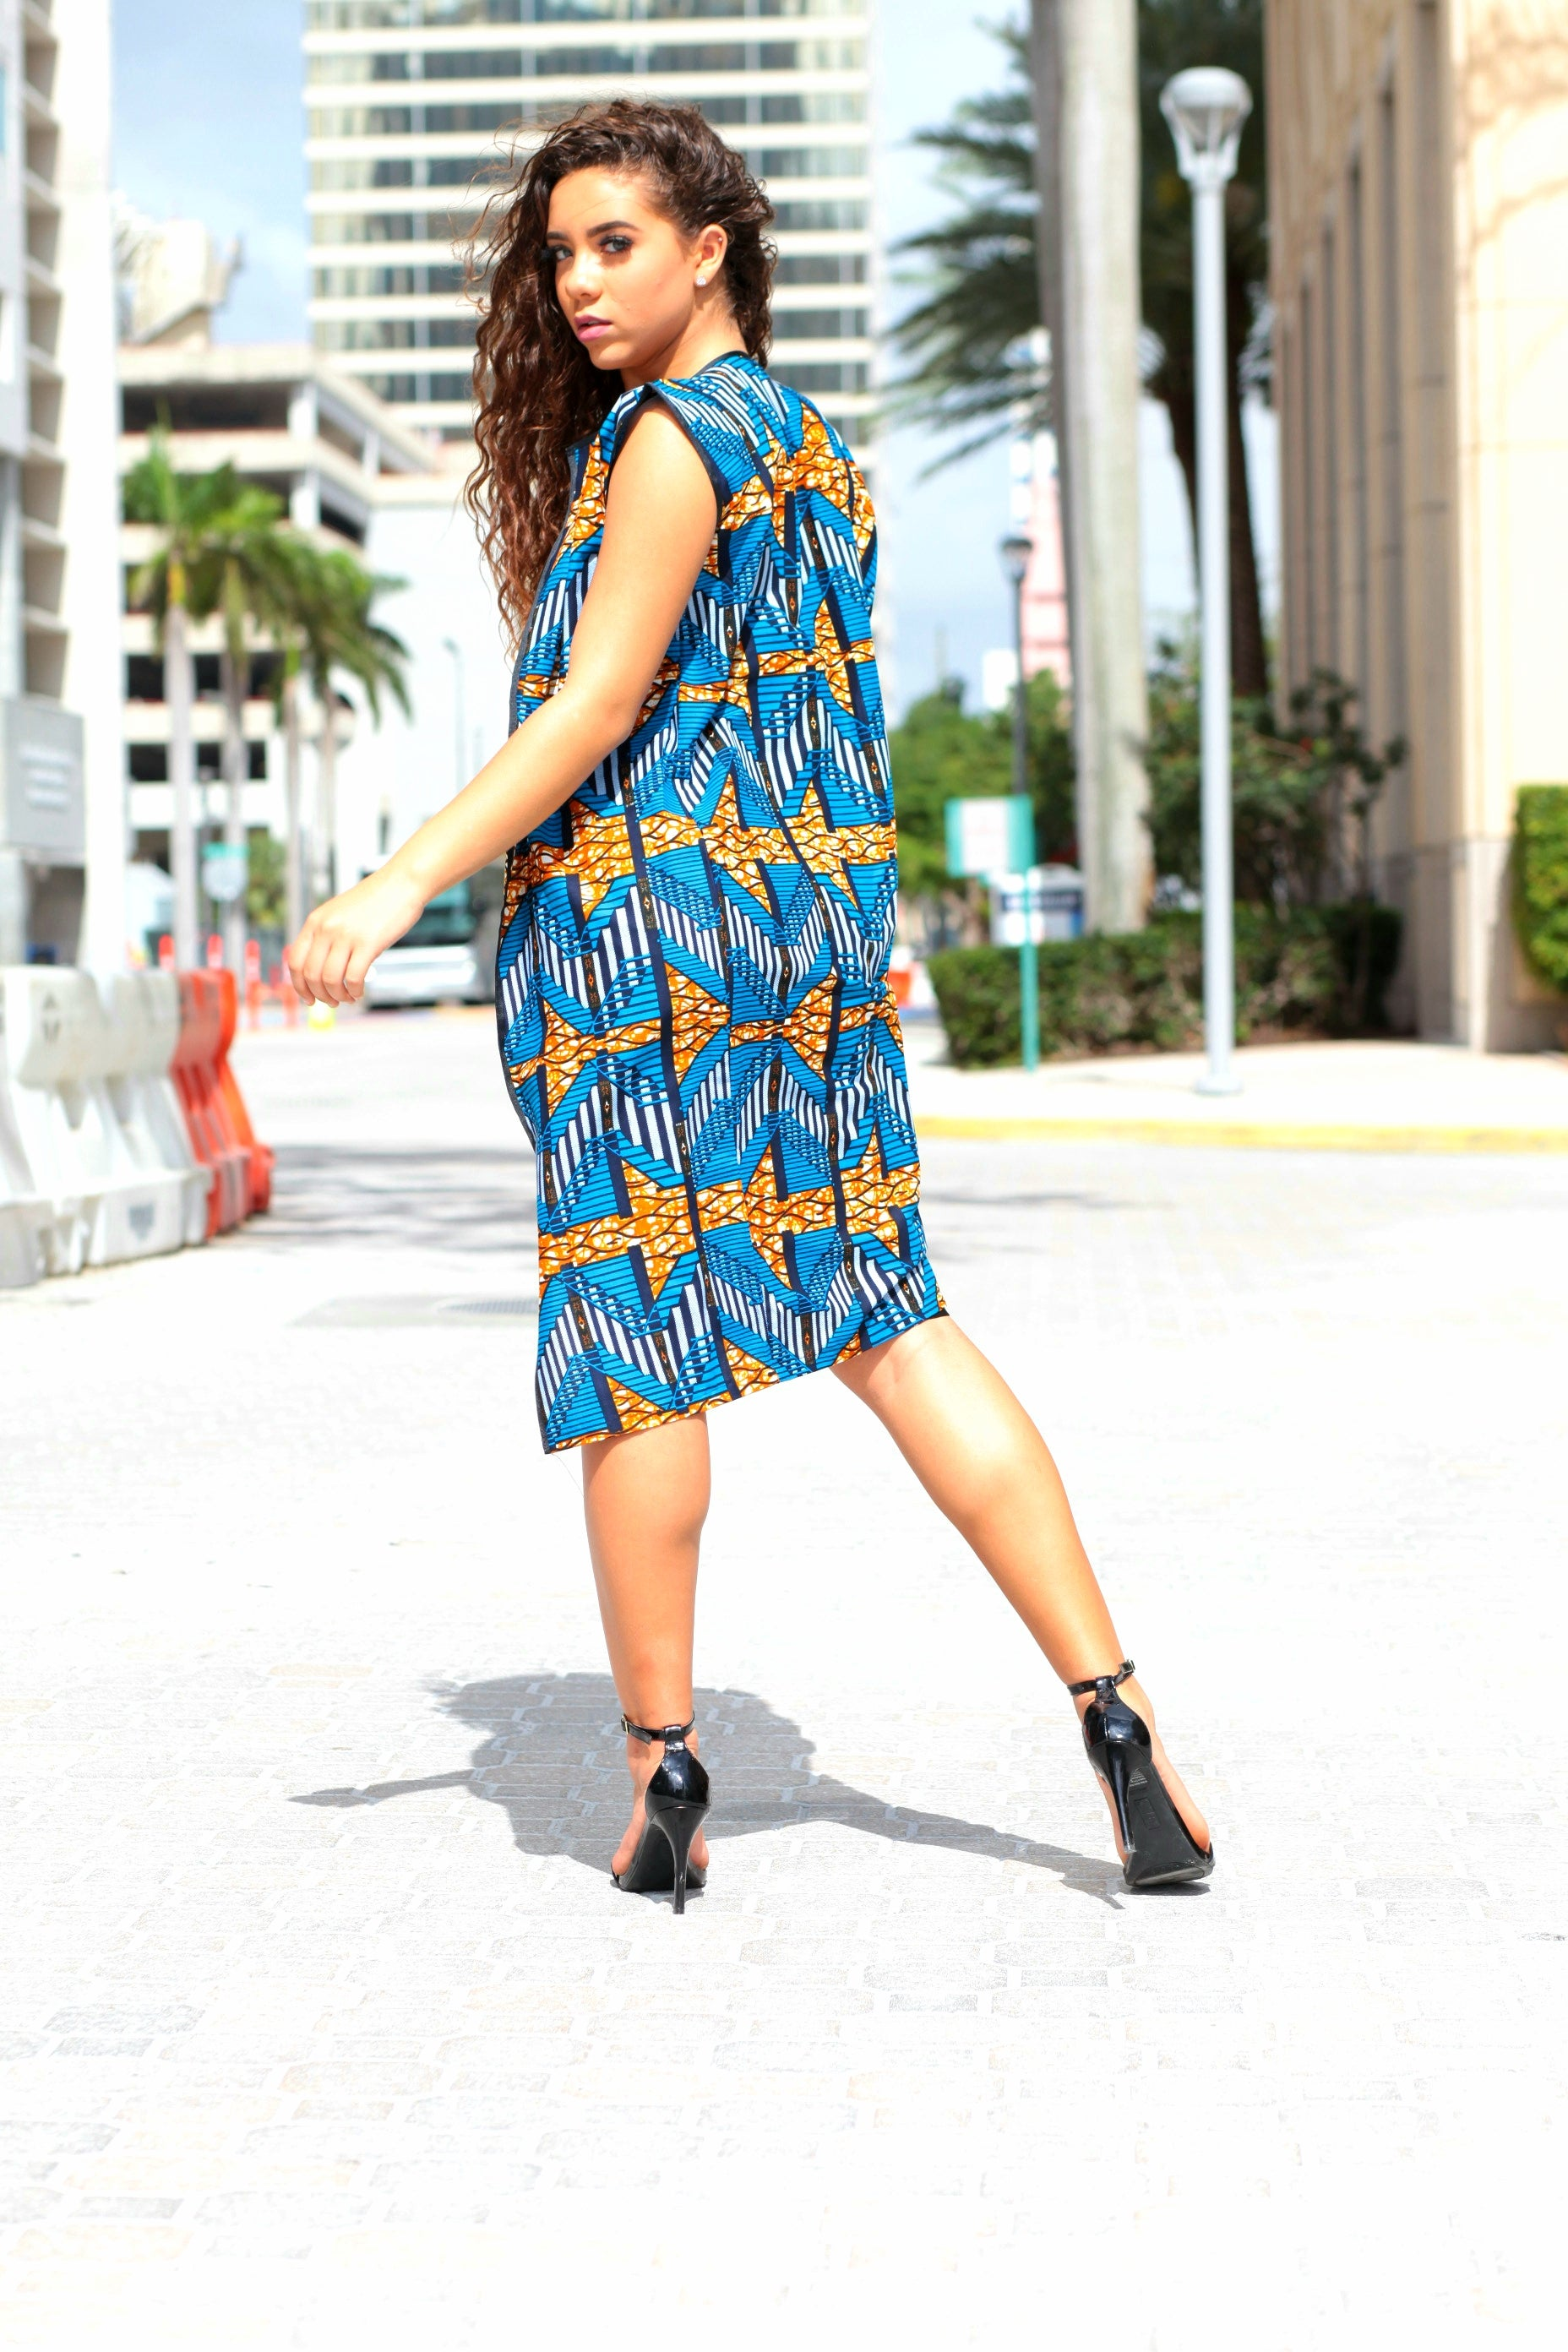 African Print Sleeveless Longline Shrug - Royal Blue /Brown Kente Prints. - Africas Closet